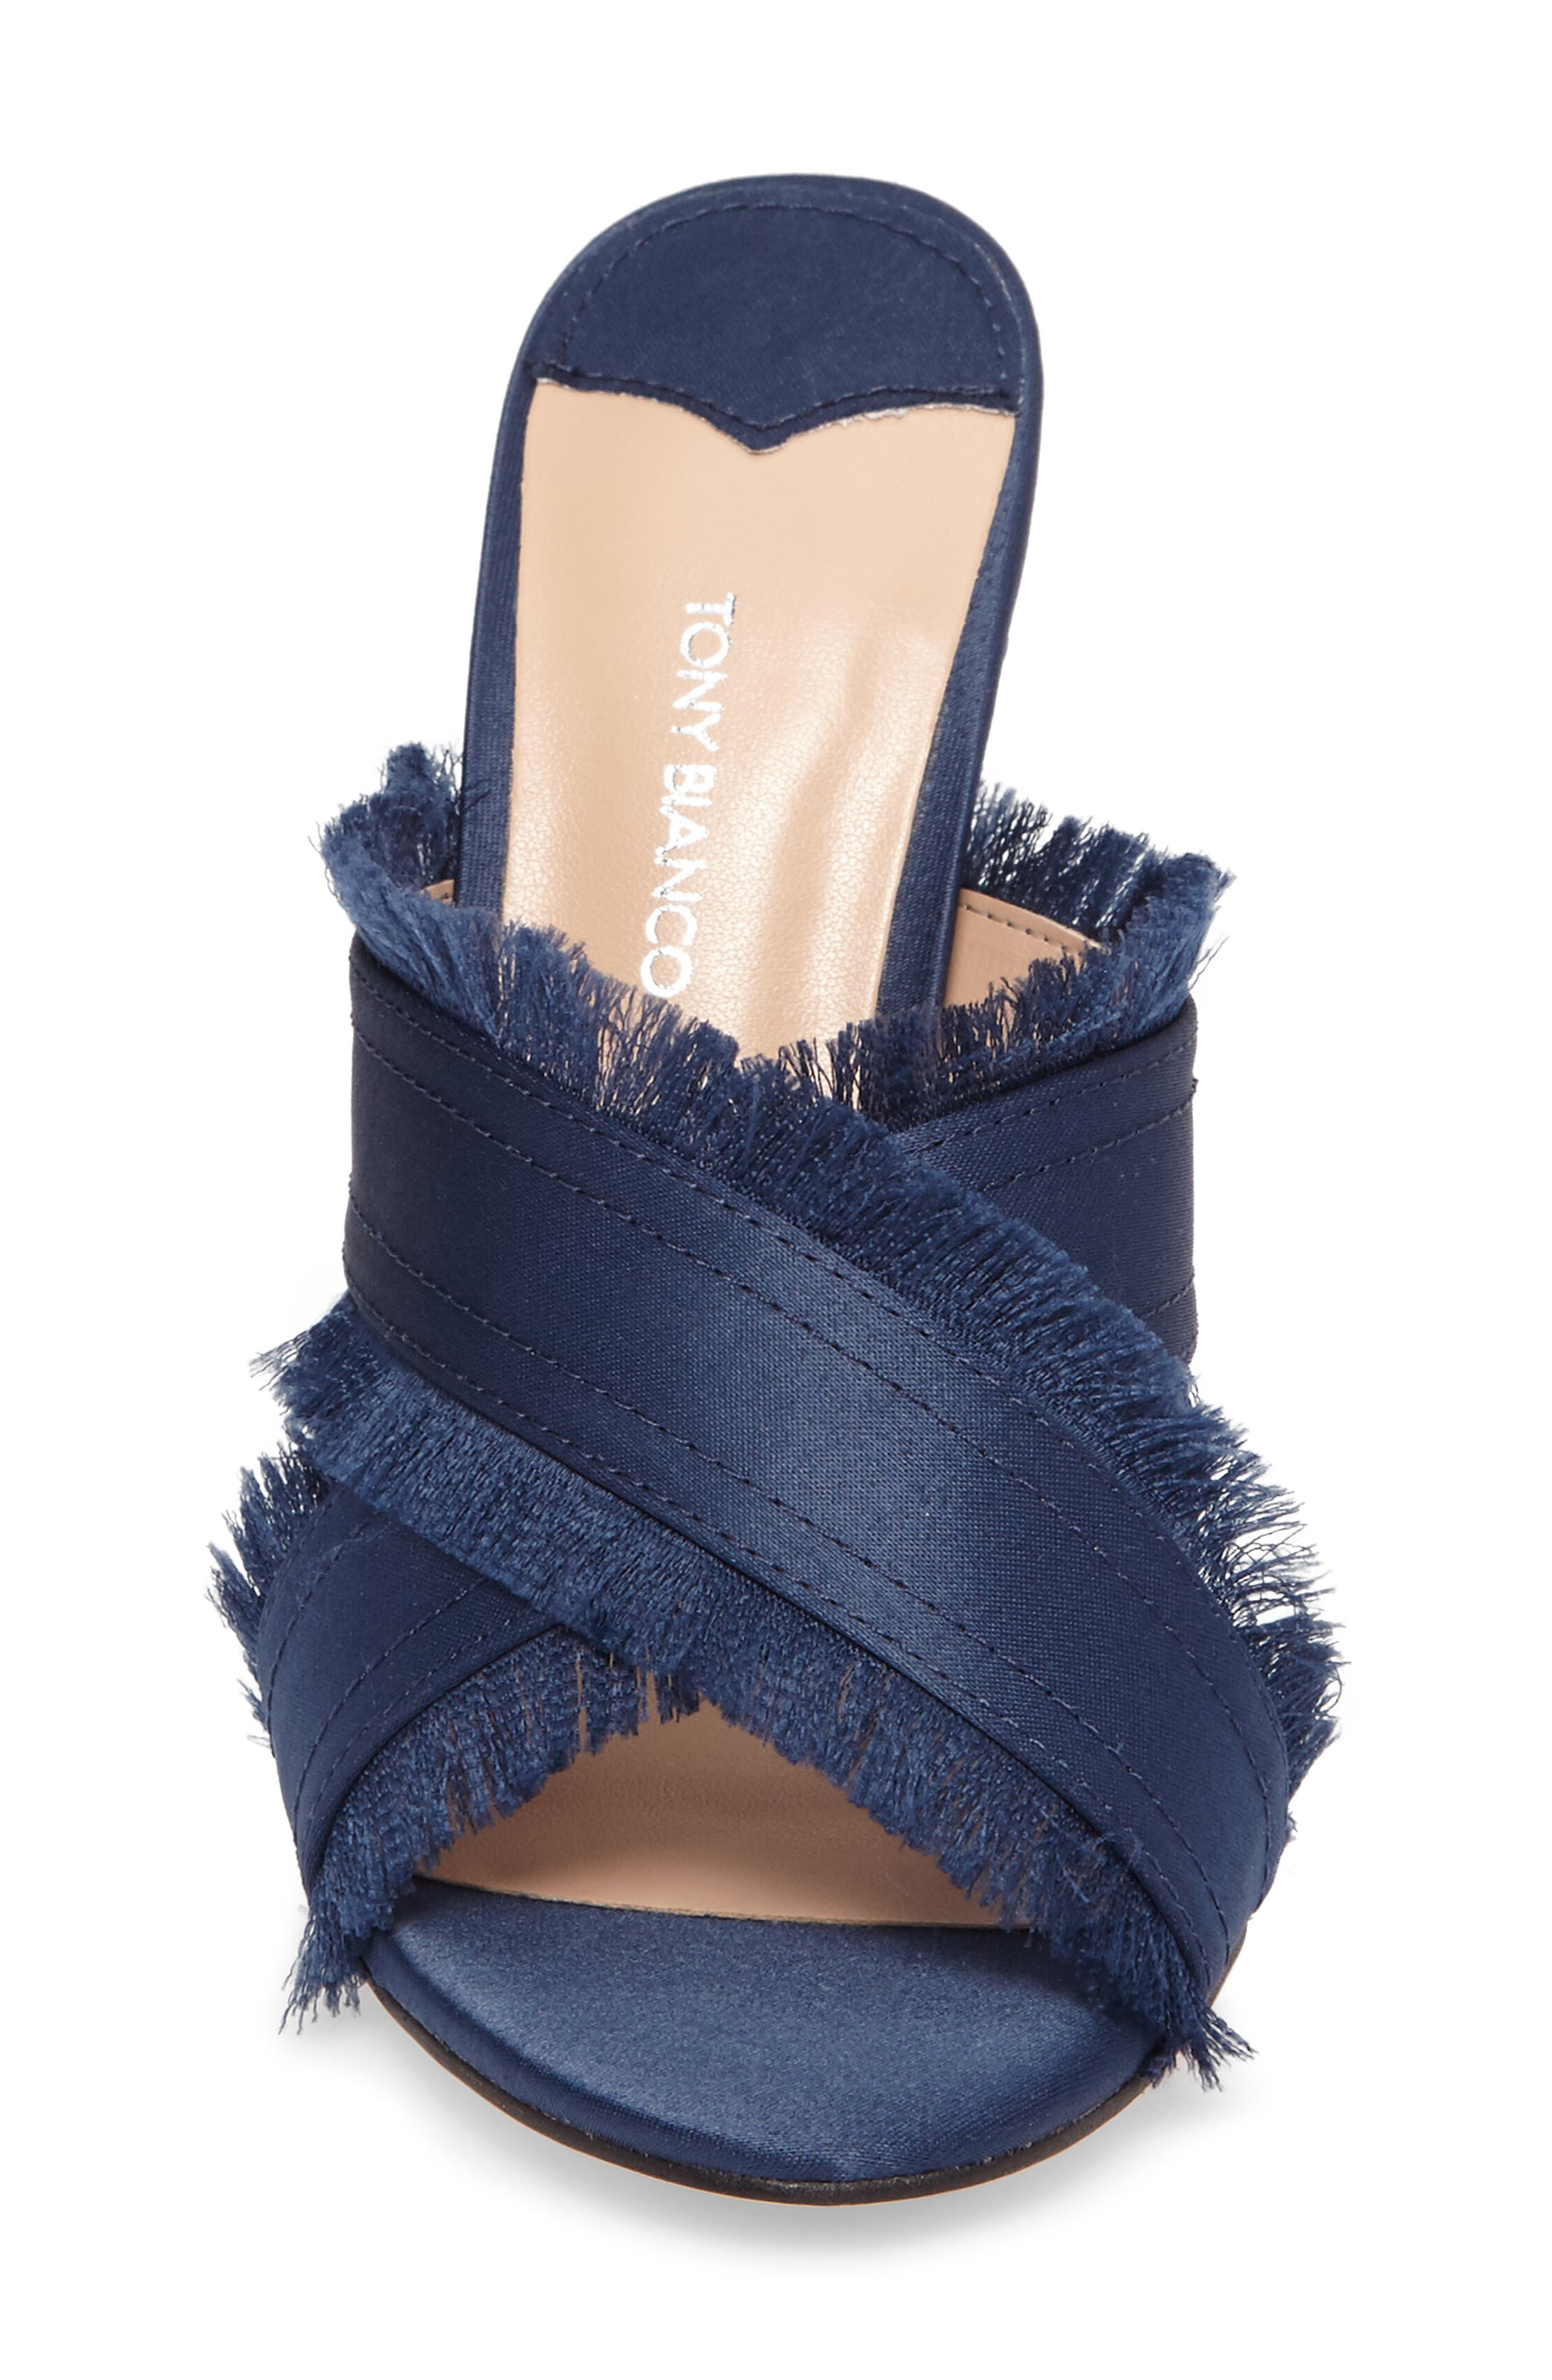 Klay Fringed Cross Strap Mule,                             Alternate thumbnail 4, color,                             Navy Luxe Satin